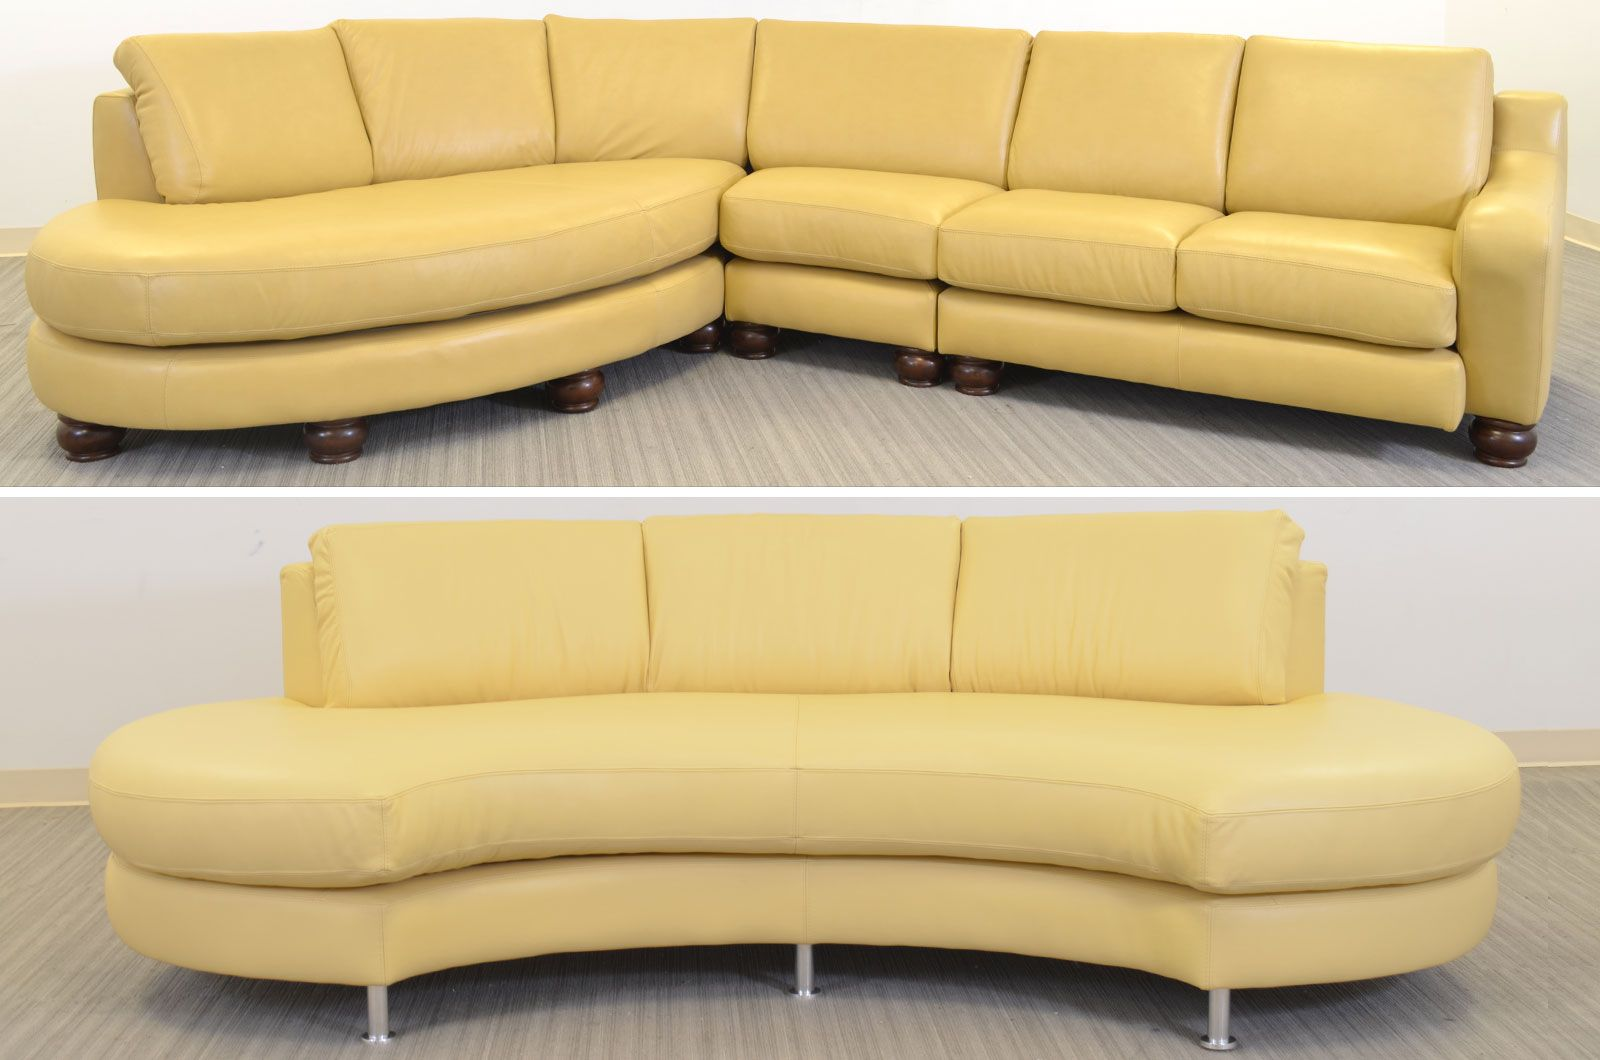 Excellent Britney Sofa Leather Sofa Co Home House Sofa Sofa Onthecornerstone Fun Painted Chair Ideas Images Onthecornerstoneorg